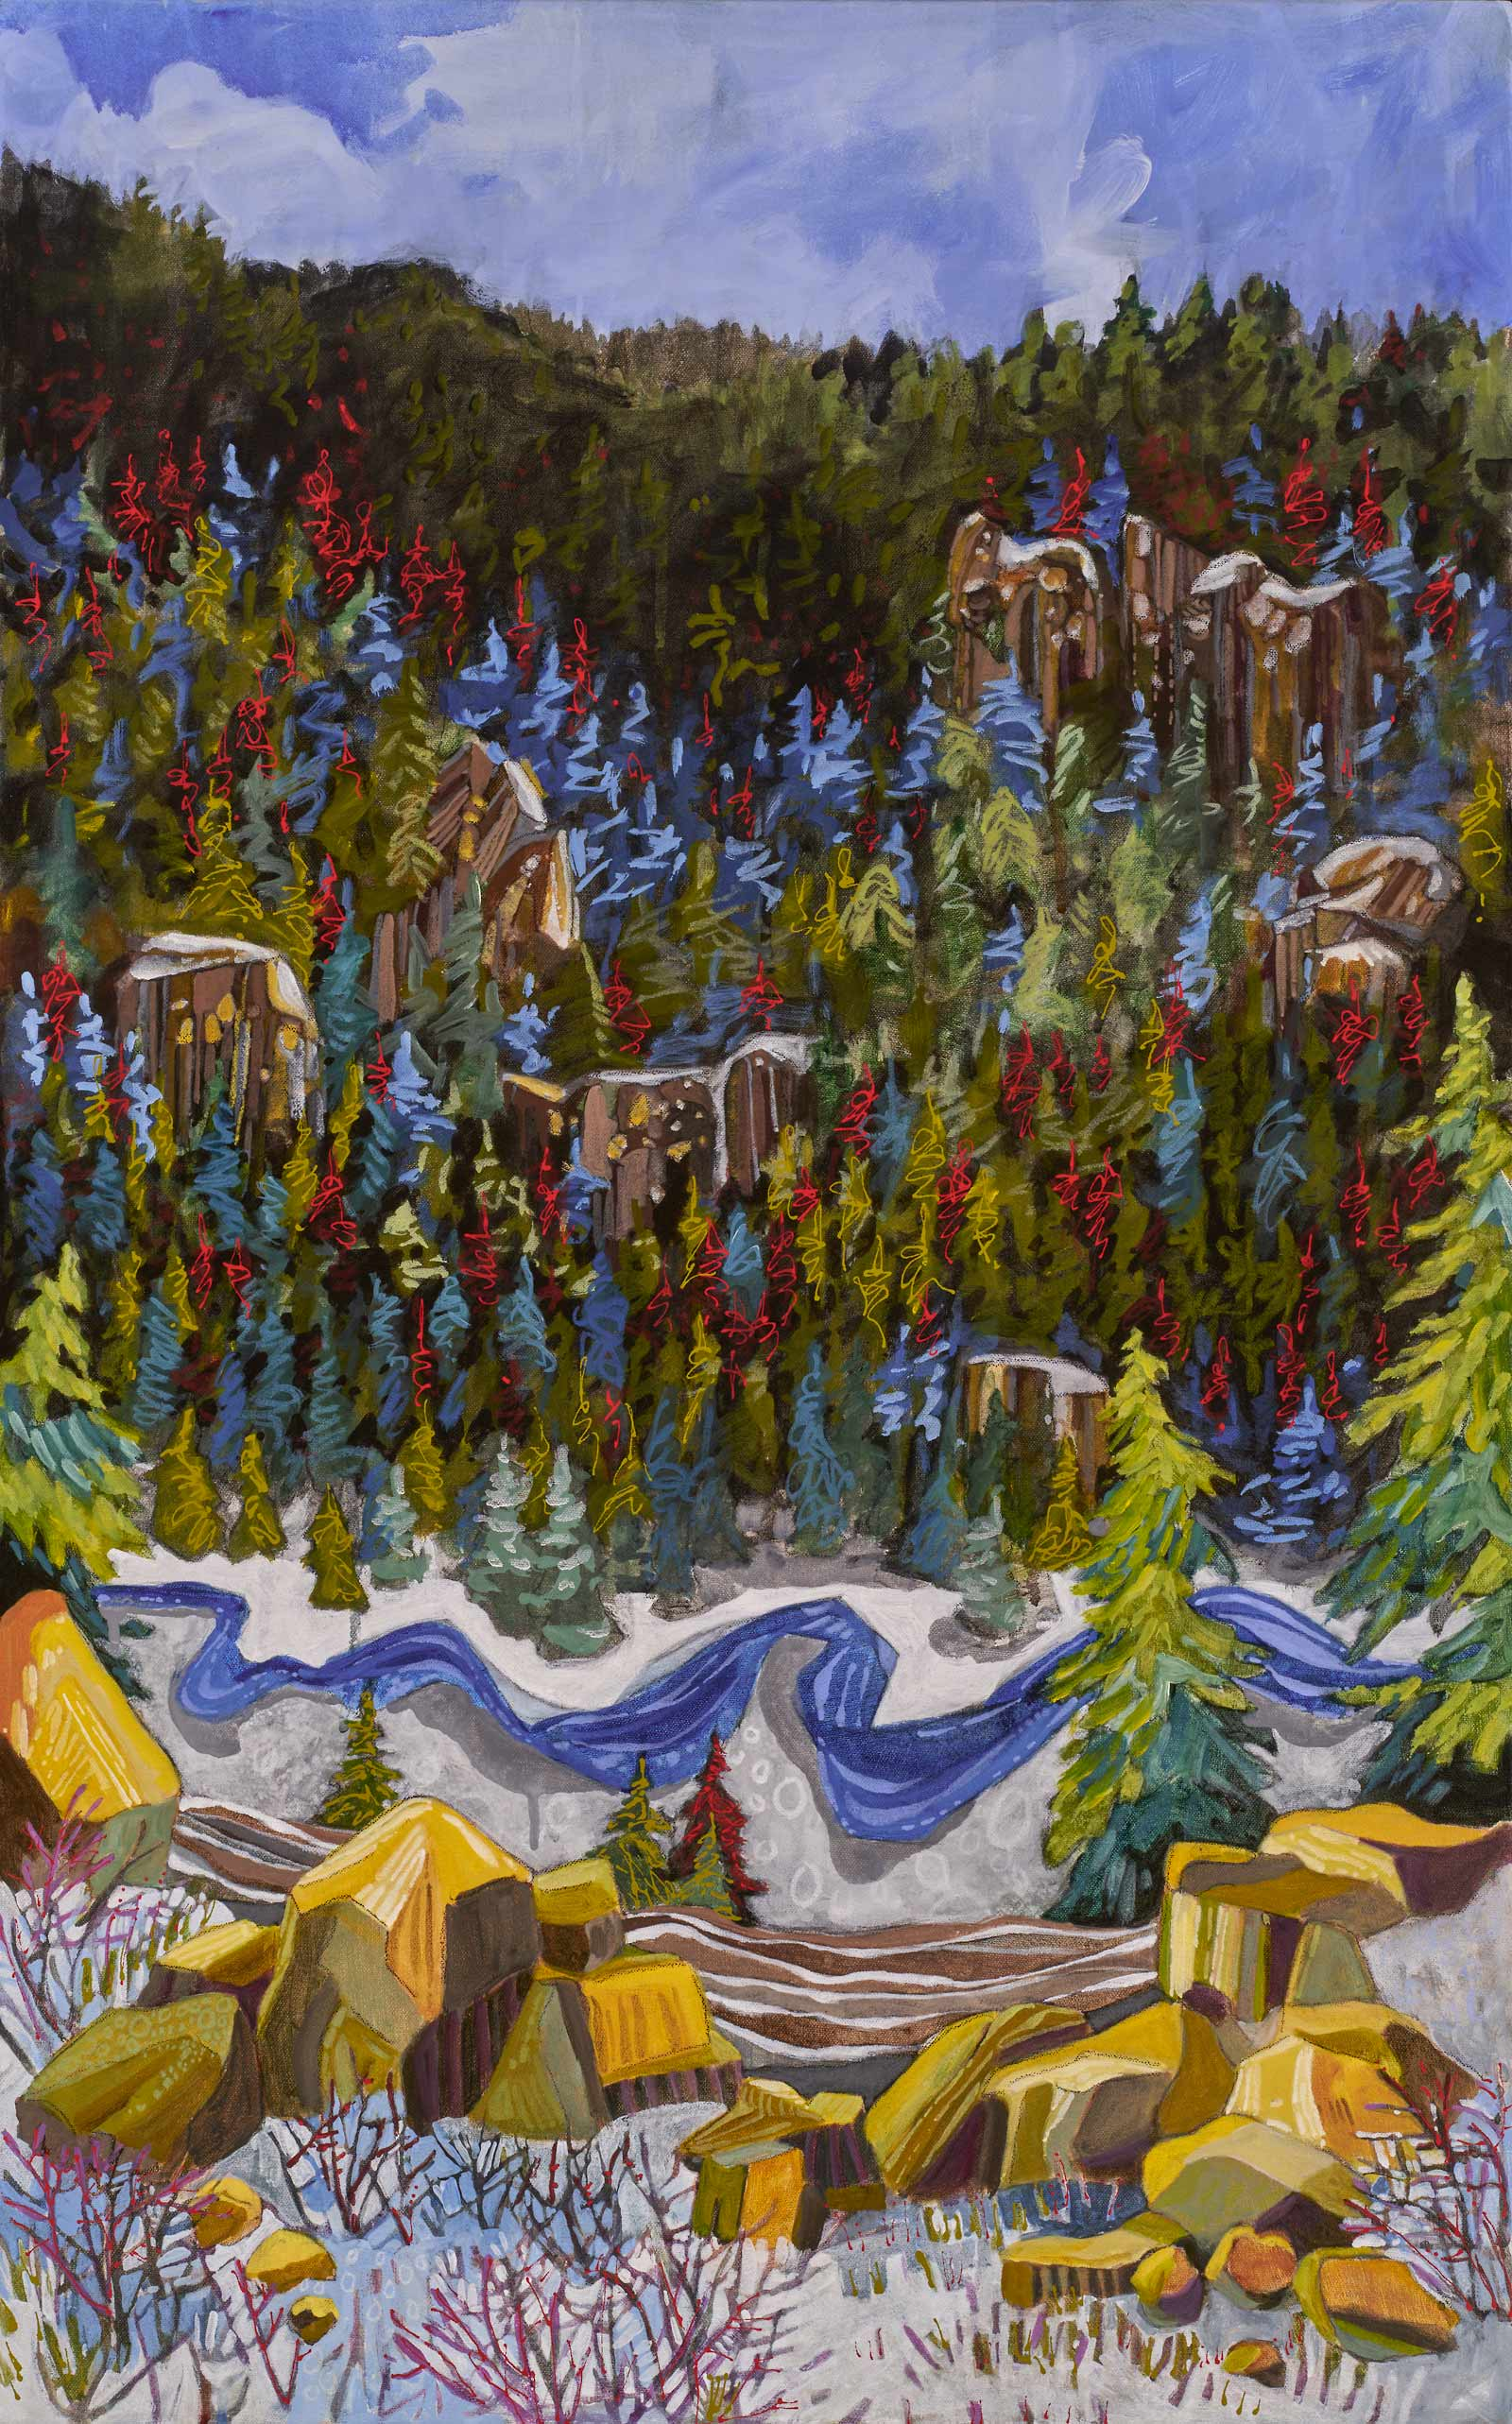 contemporary landscape painting by Lance Whitner hanging in Pine Moon Fine Art. Fish Creek Canyon, 37x23